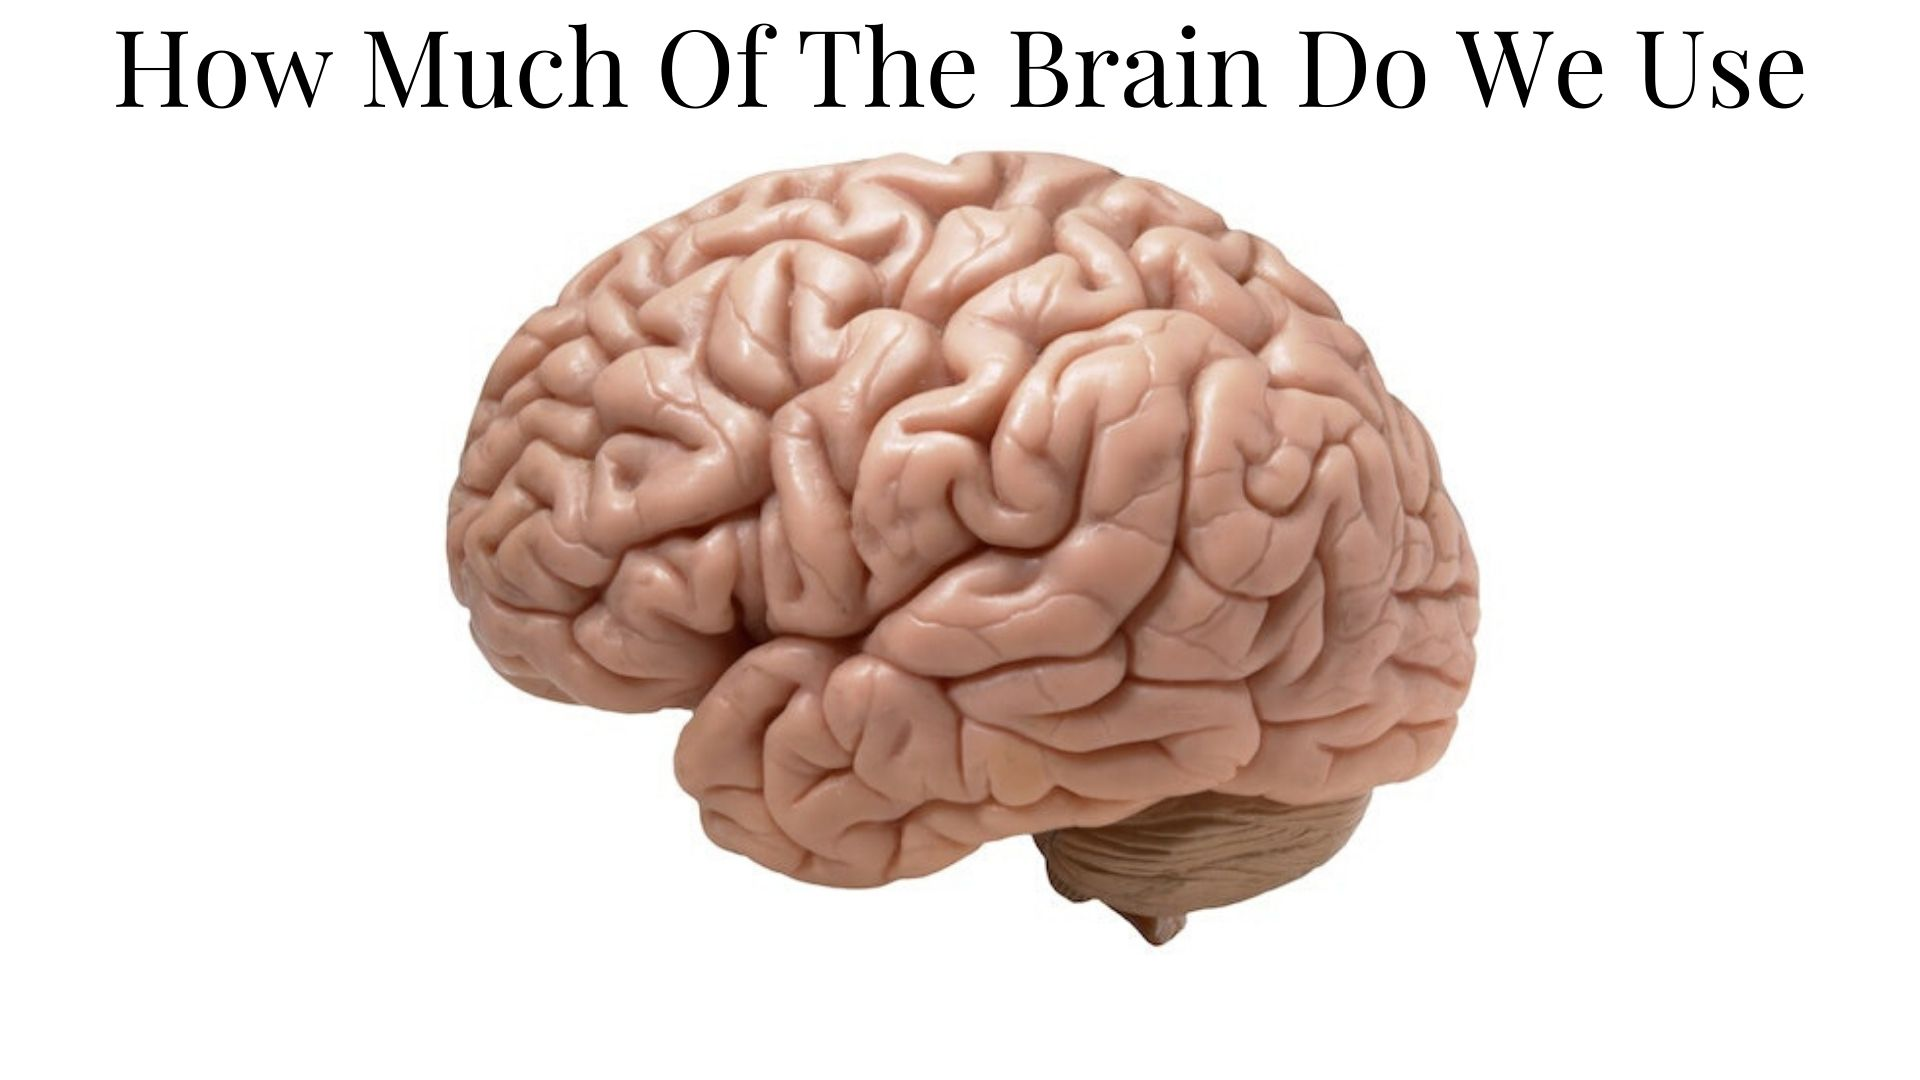 How Much Of The Brain Do We Use